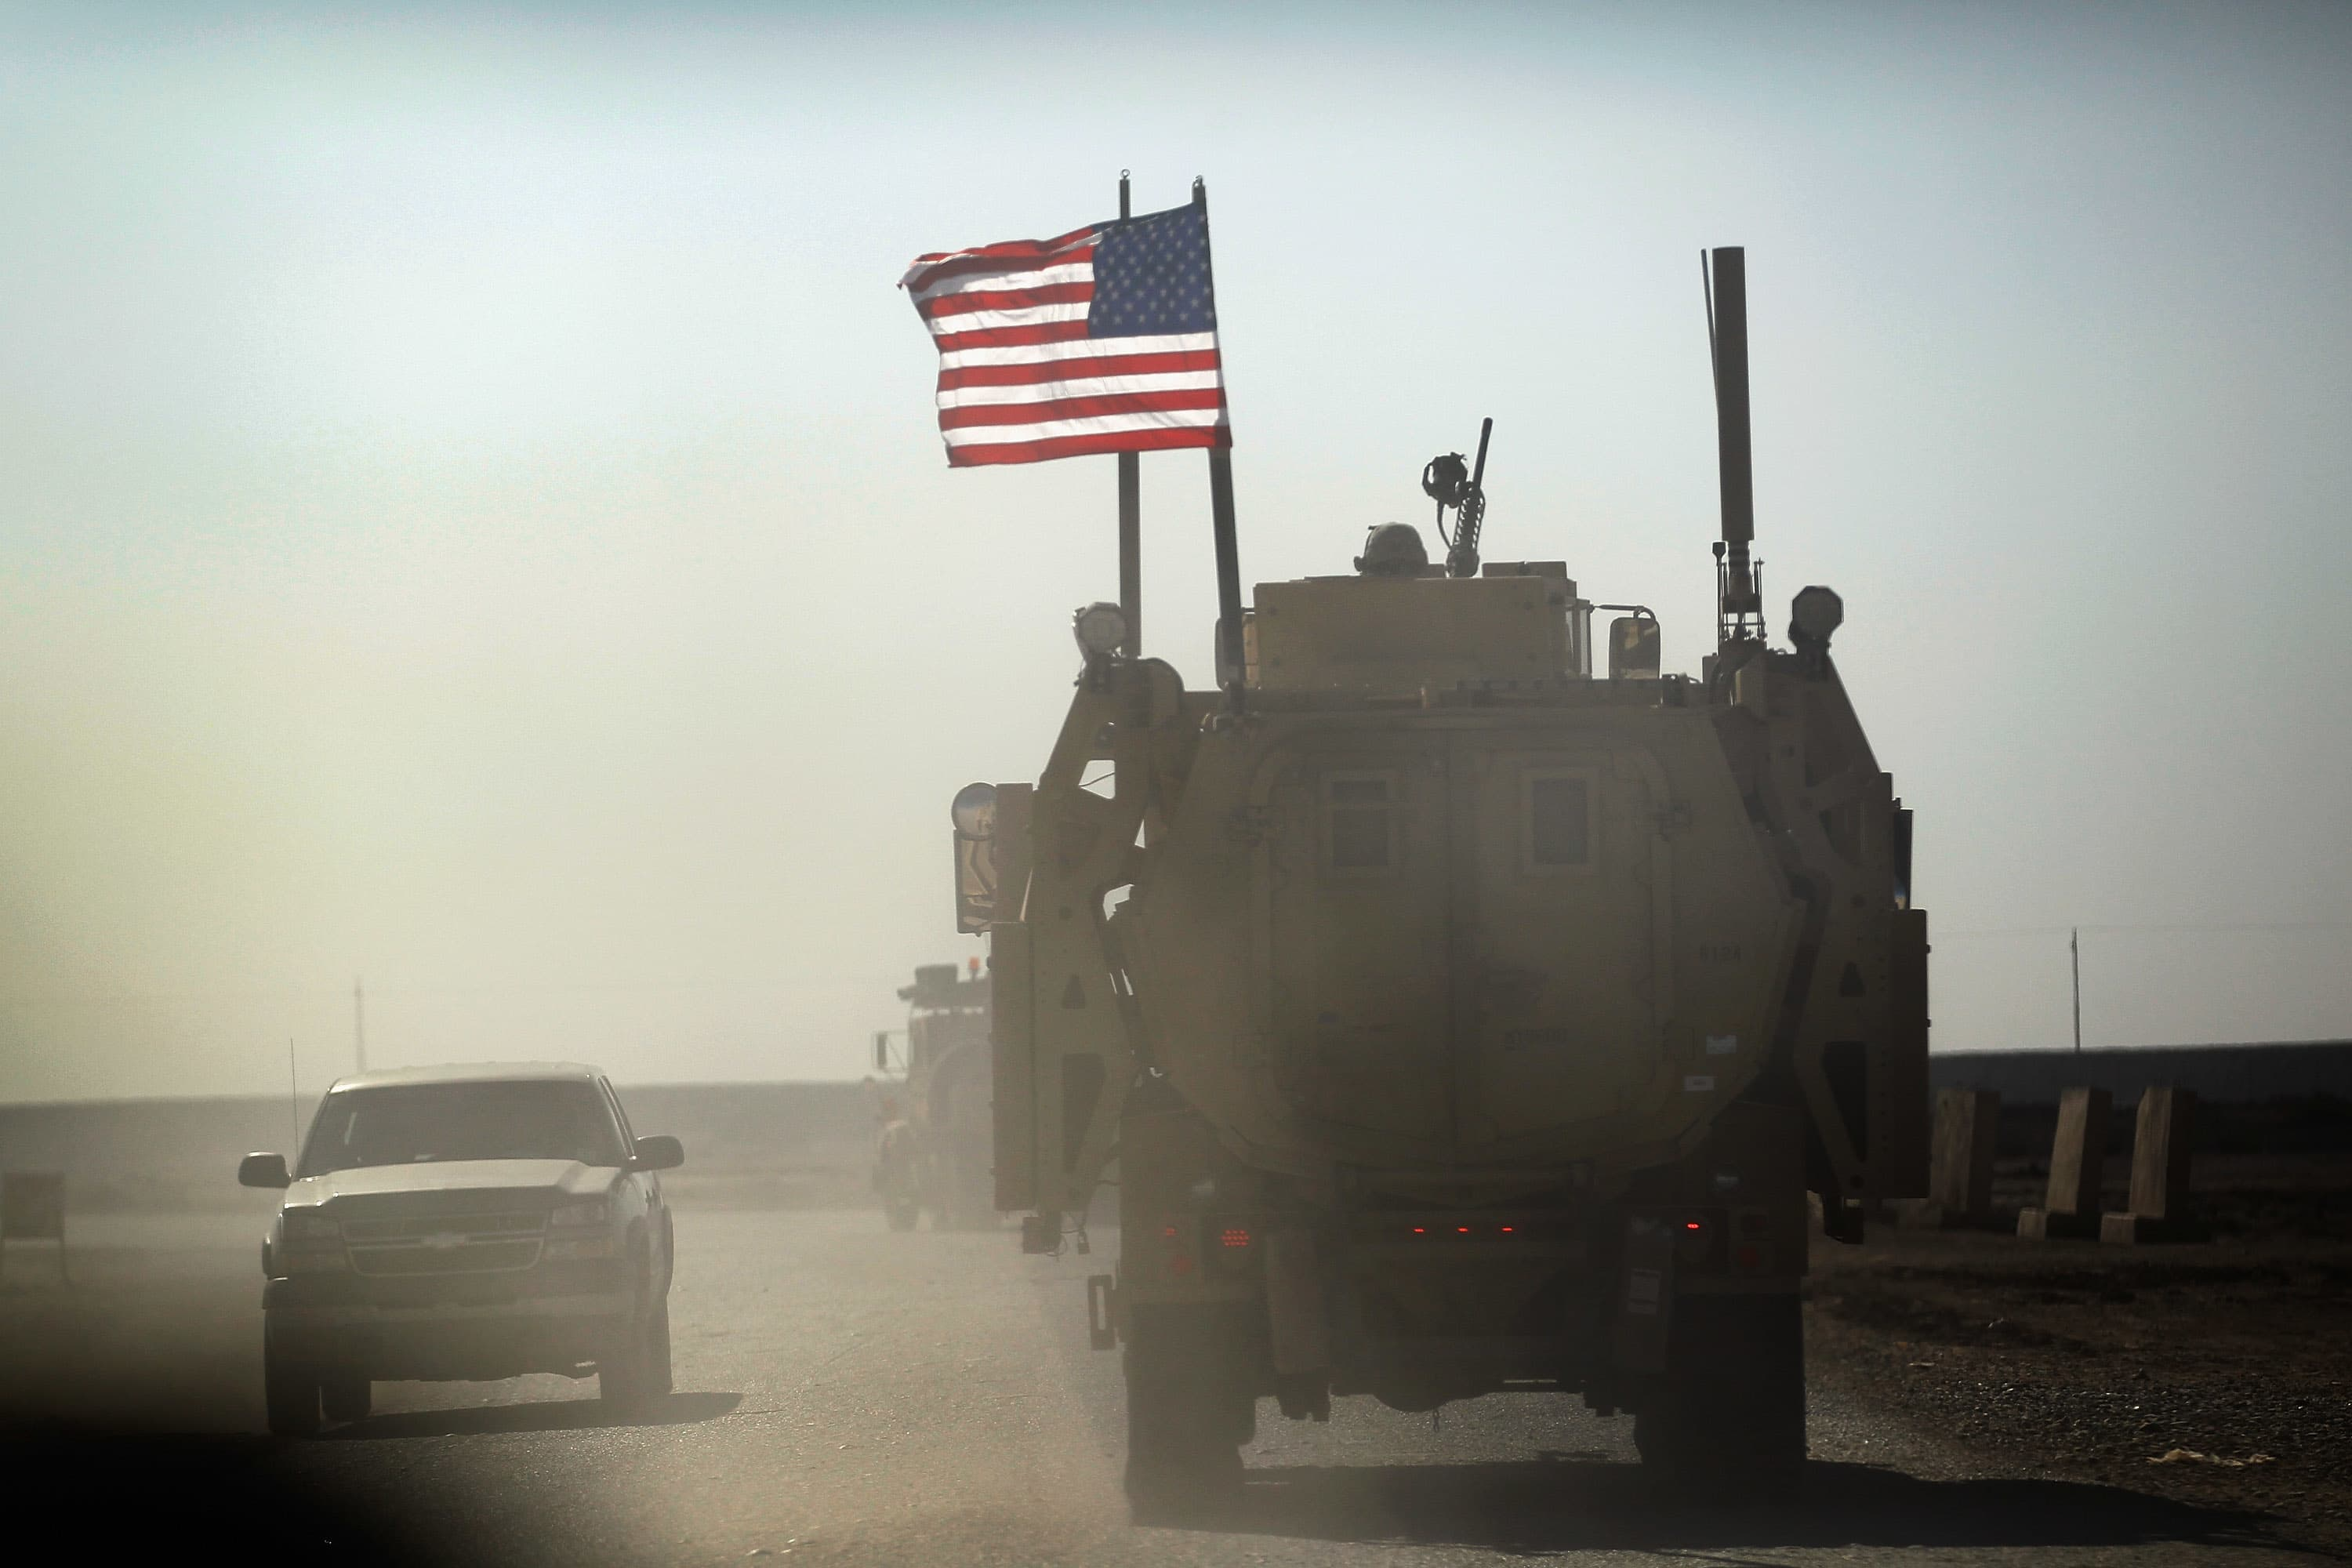 US military says general's letter announcing Iraq withdrawal was a mistake: 'This is not what's happening'